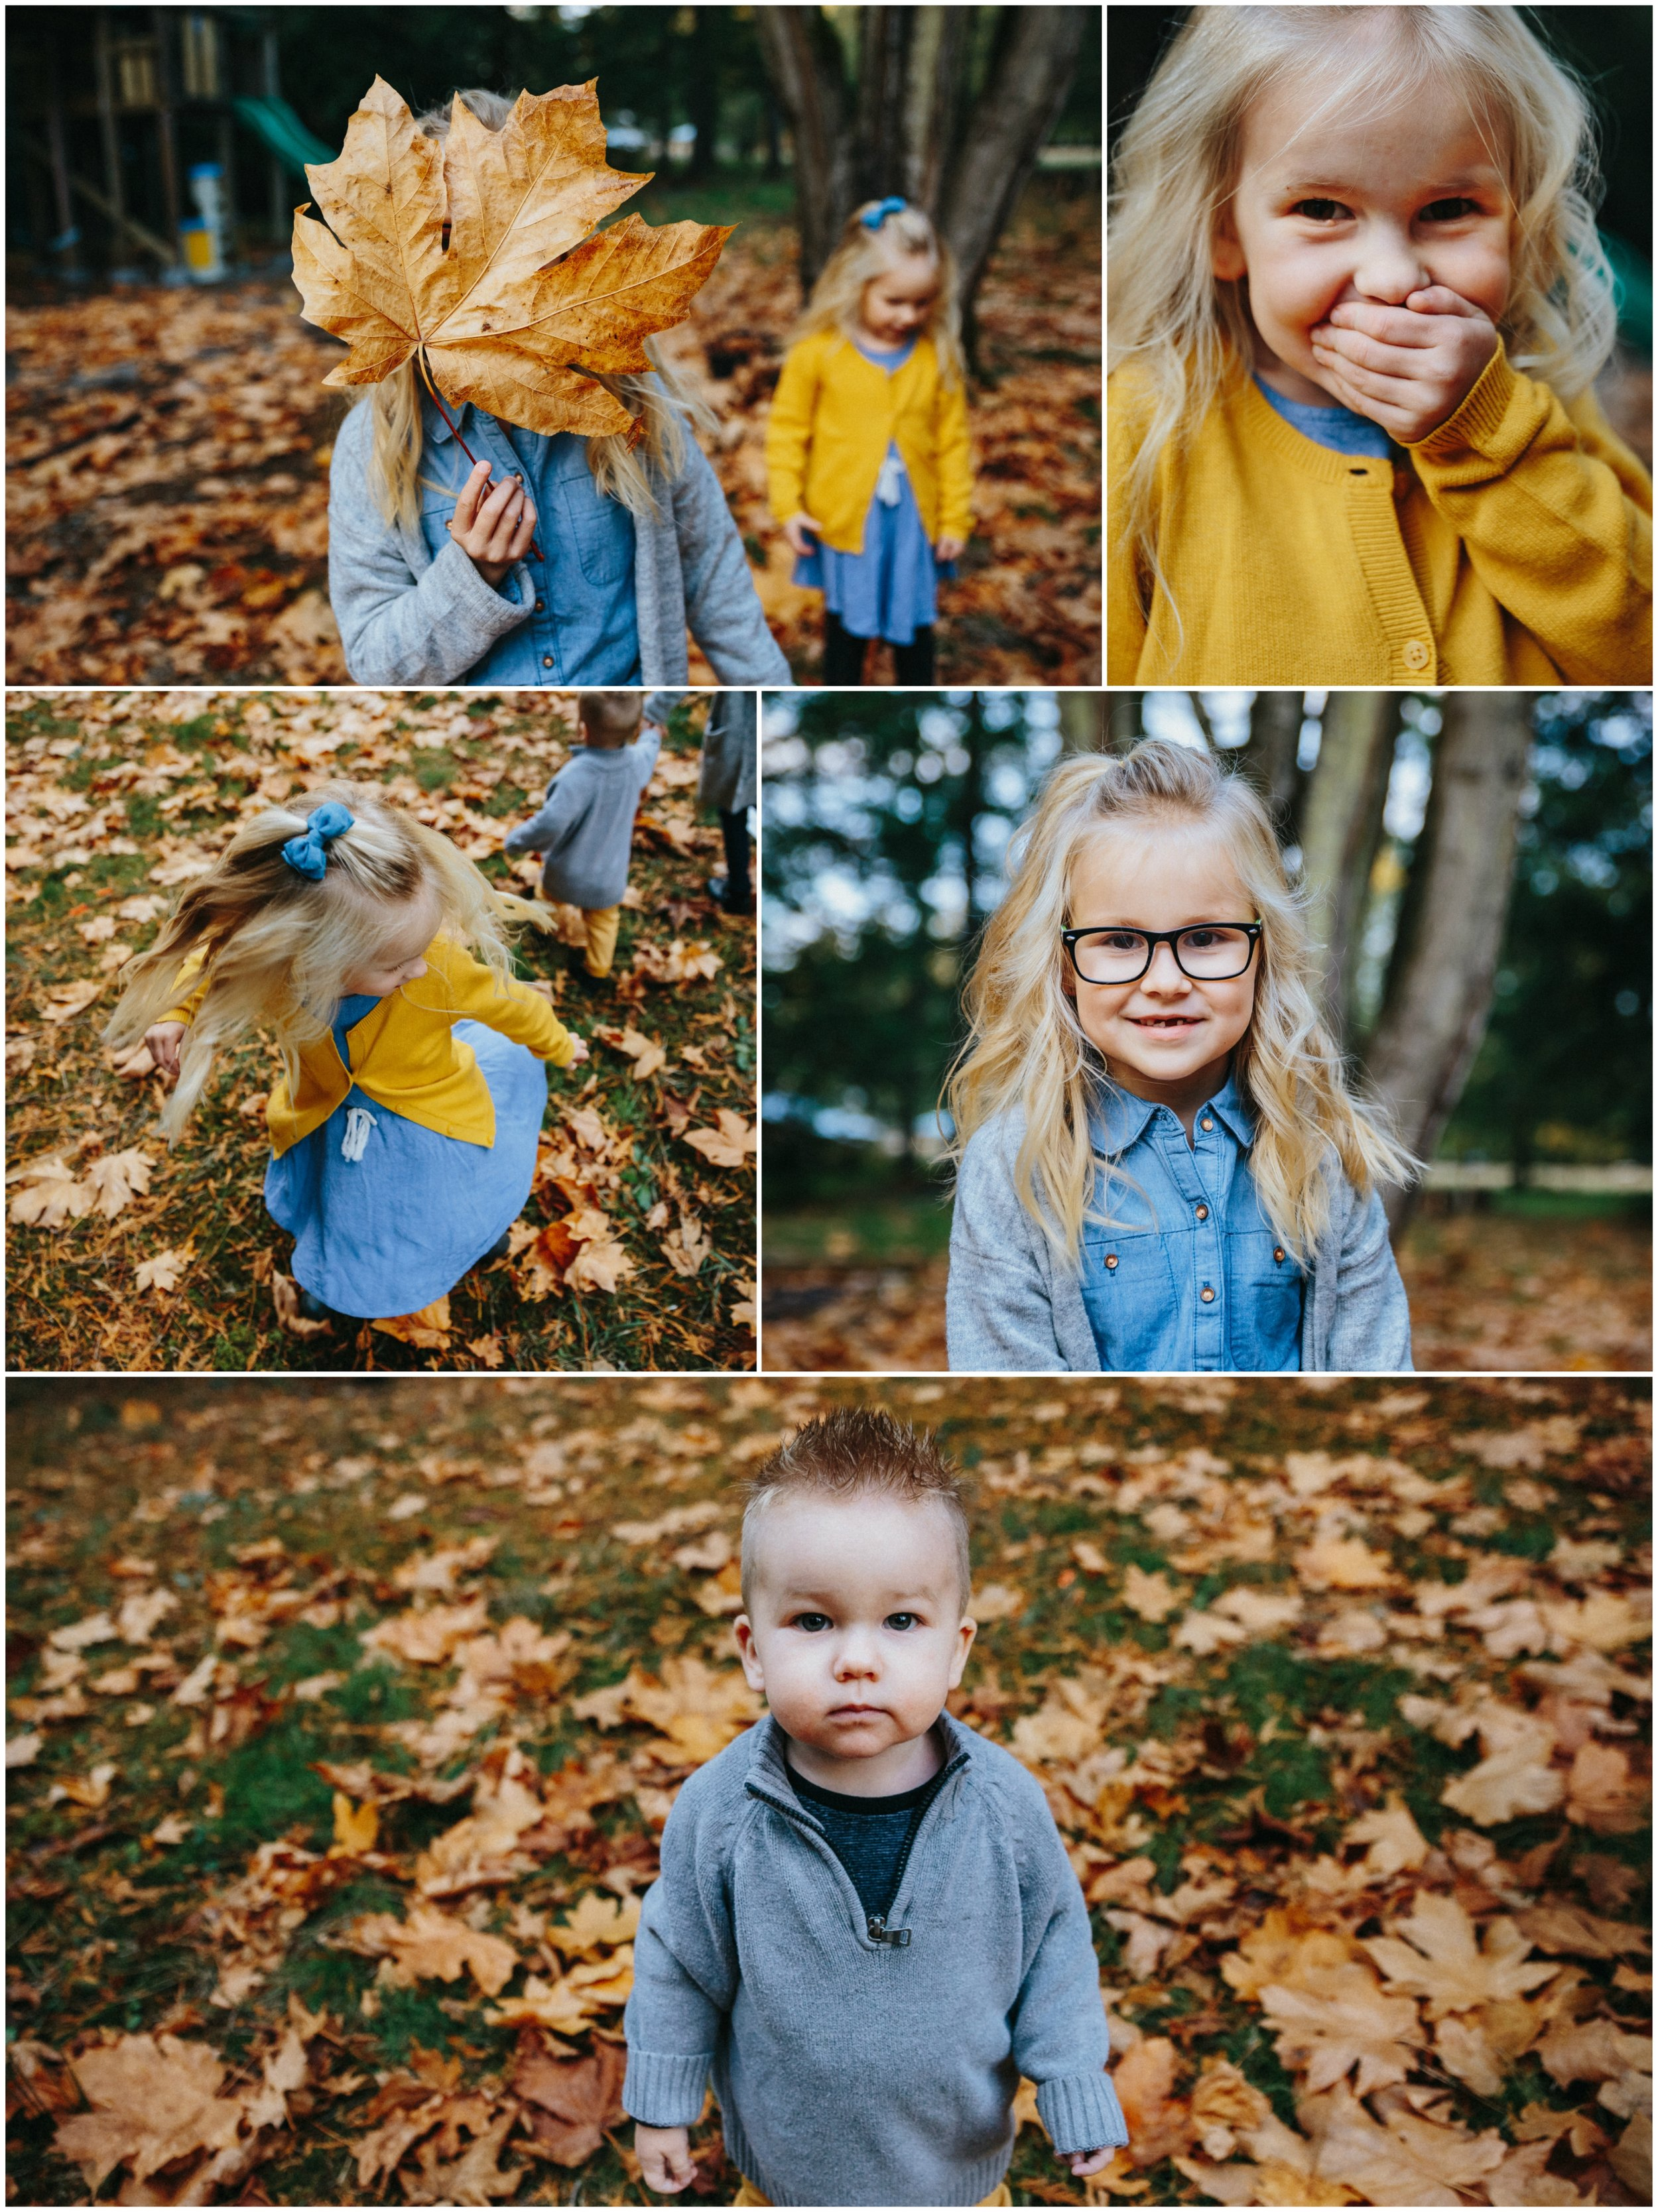 Fall, leaves, twirl Backyard Family Roasting Marshmallows, 4 kids, navy blue, mustard yellow, jean . Real moments, real memories. sticky fingers, documentary lifestyle photography by Mimsical photography, Fraser Valley, British Columbia, Langley, Vancouver.